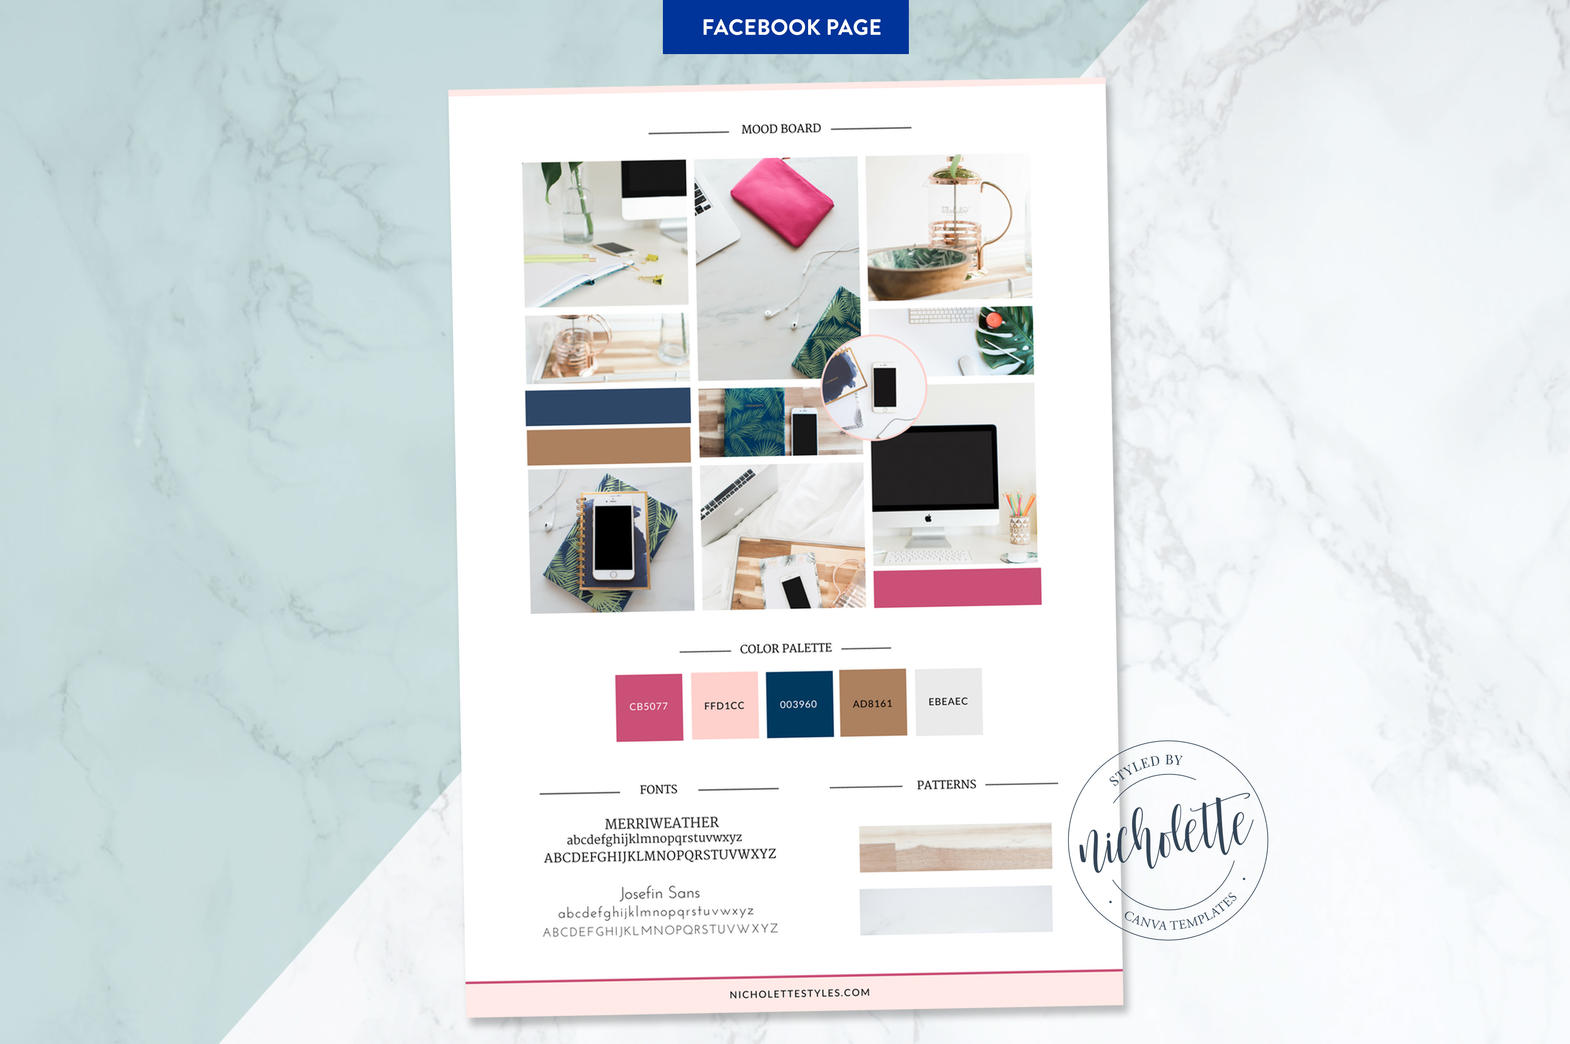 Canva Facebook Page Templates